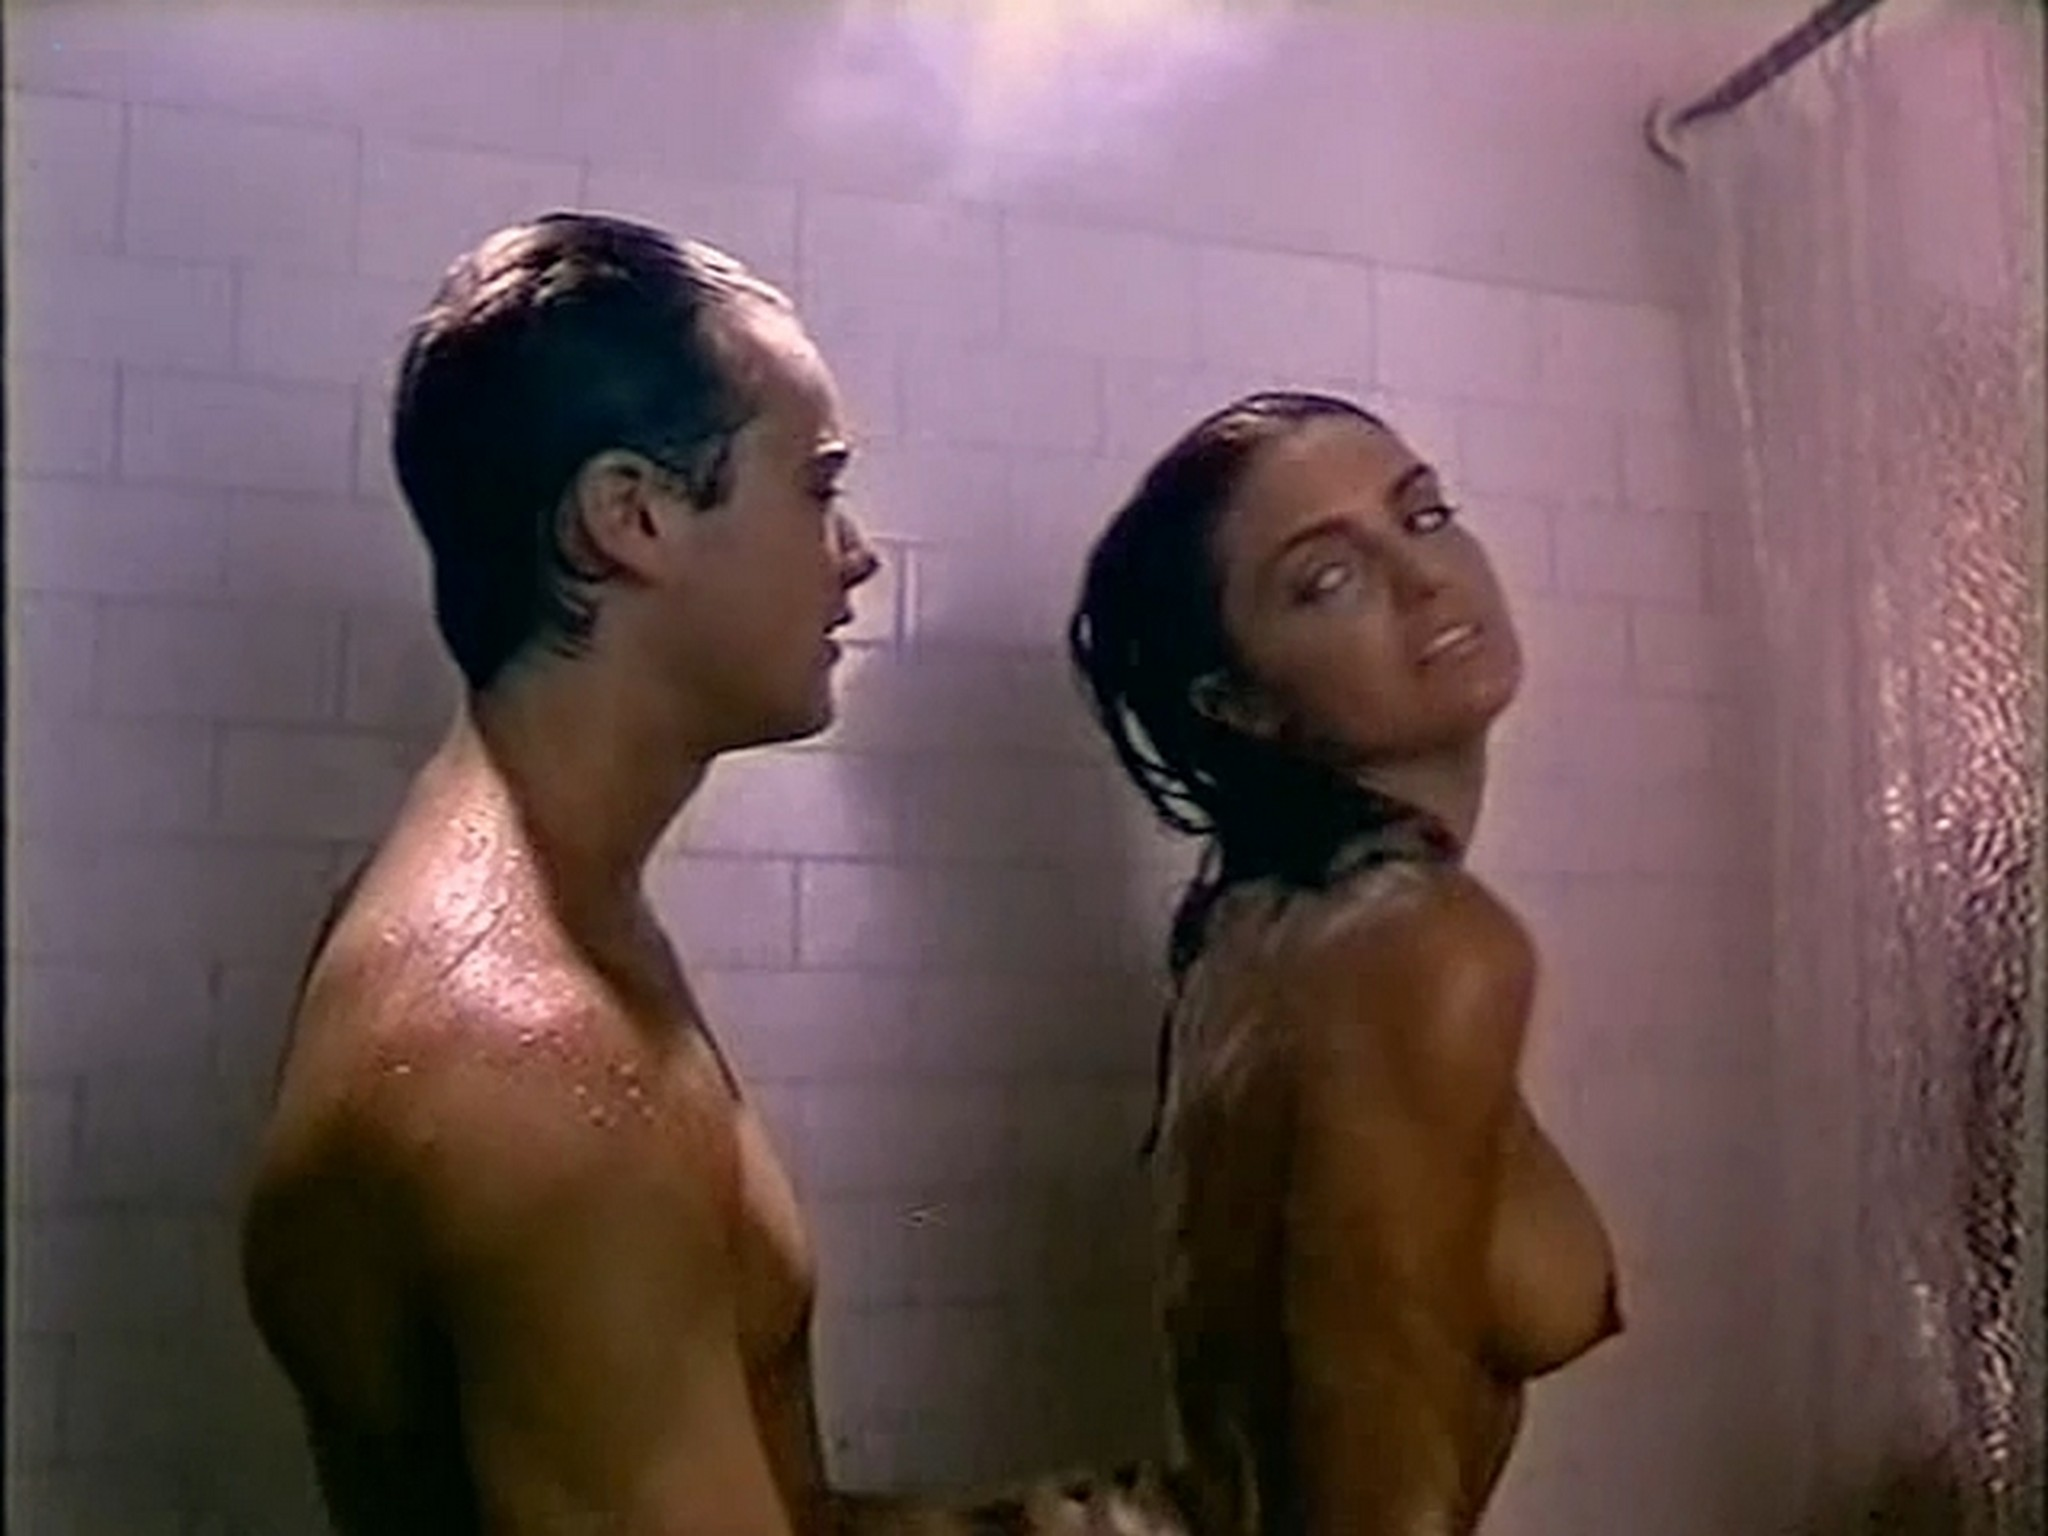 Tracy Scoggins nude in the shower The Gumshoe Kid 1990 DVDRip 8